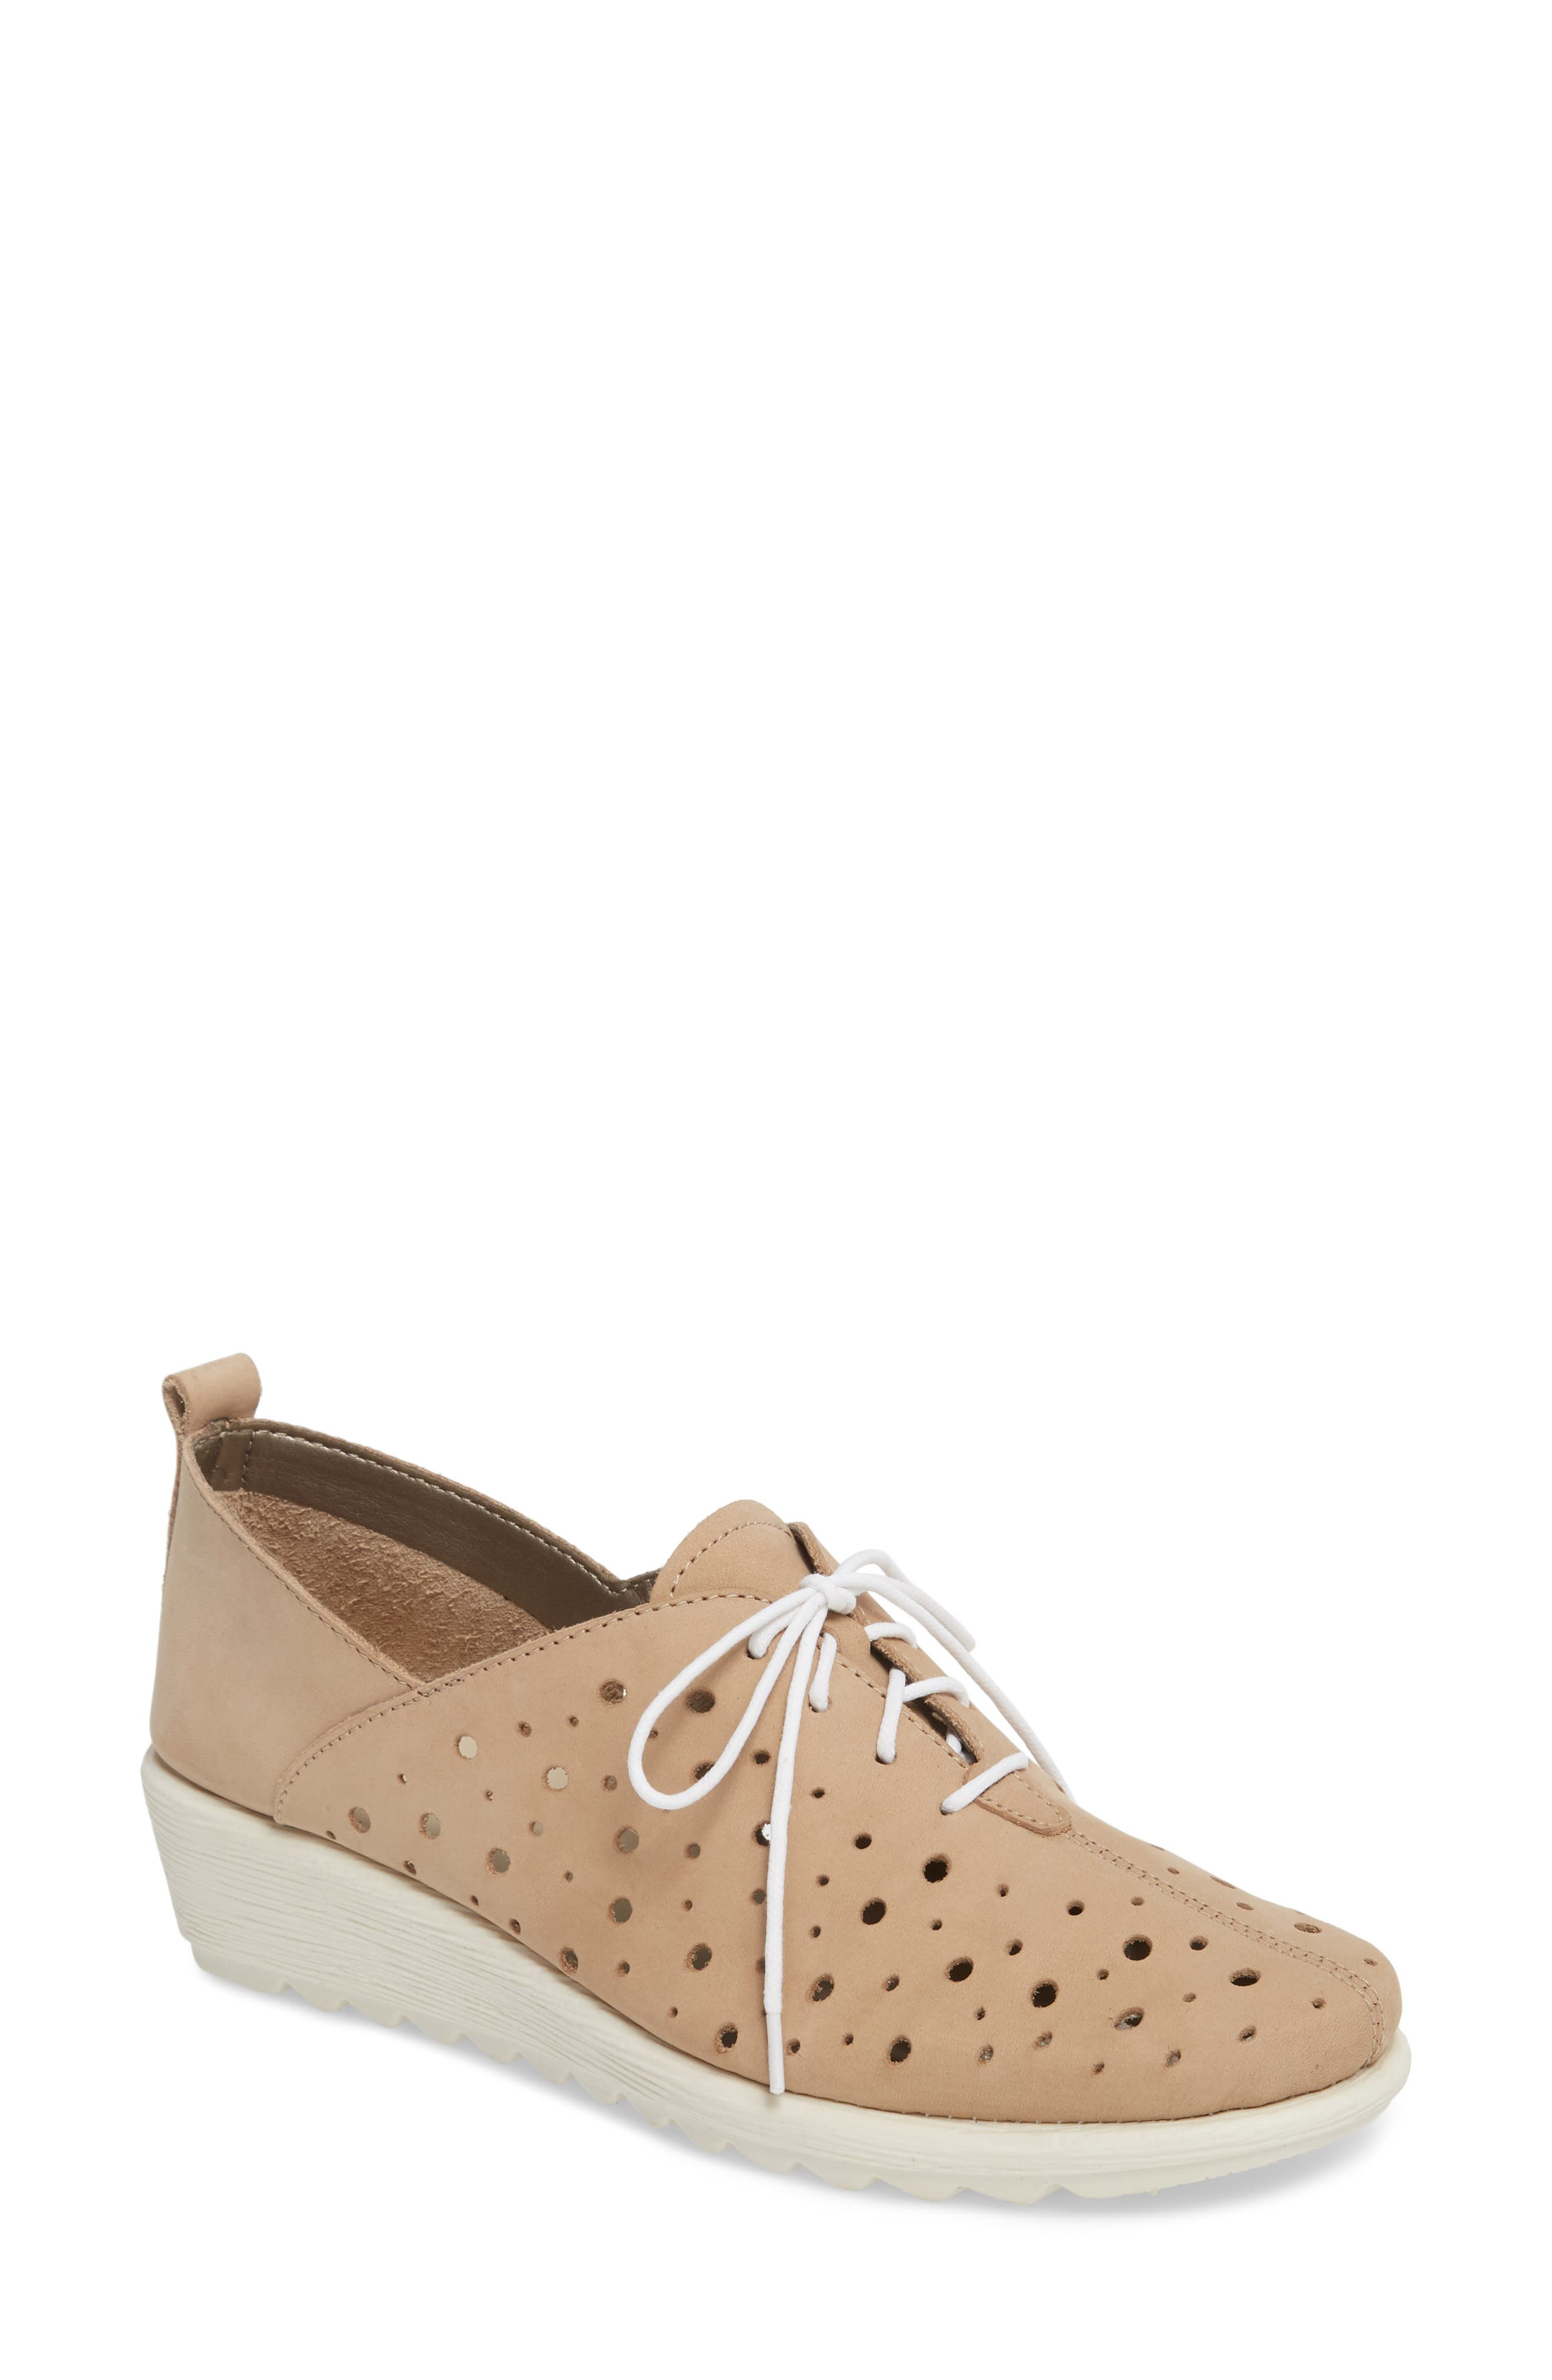 The FLEXX 'Run Crazy Two' Perforated Wedge Sneaker ...